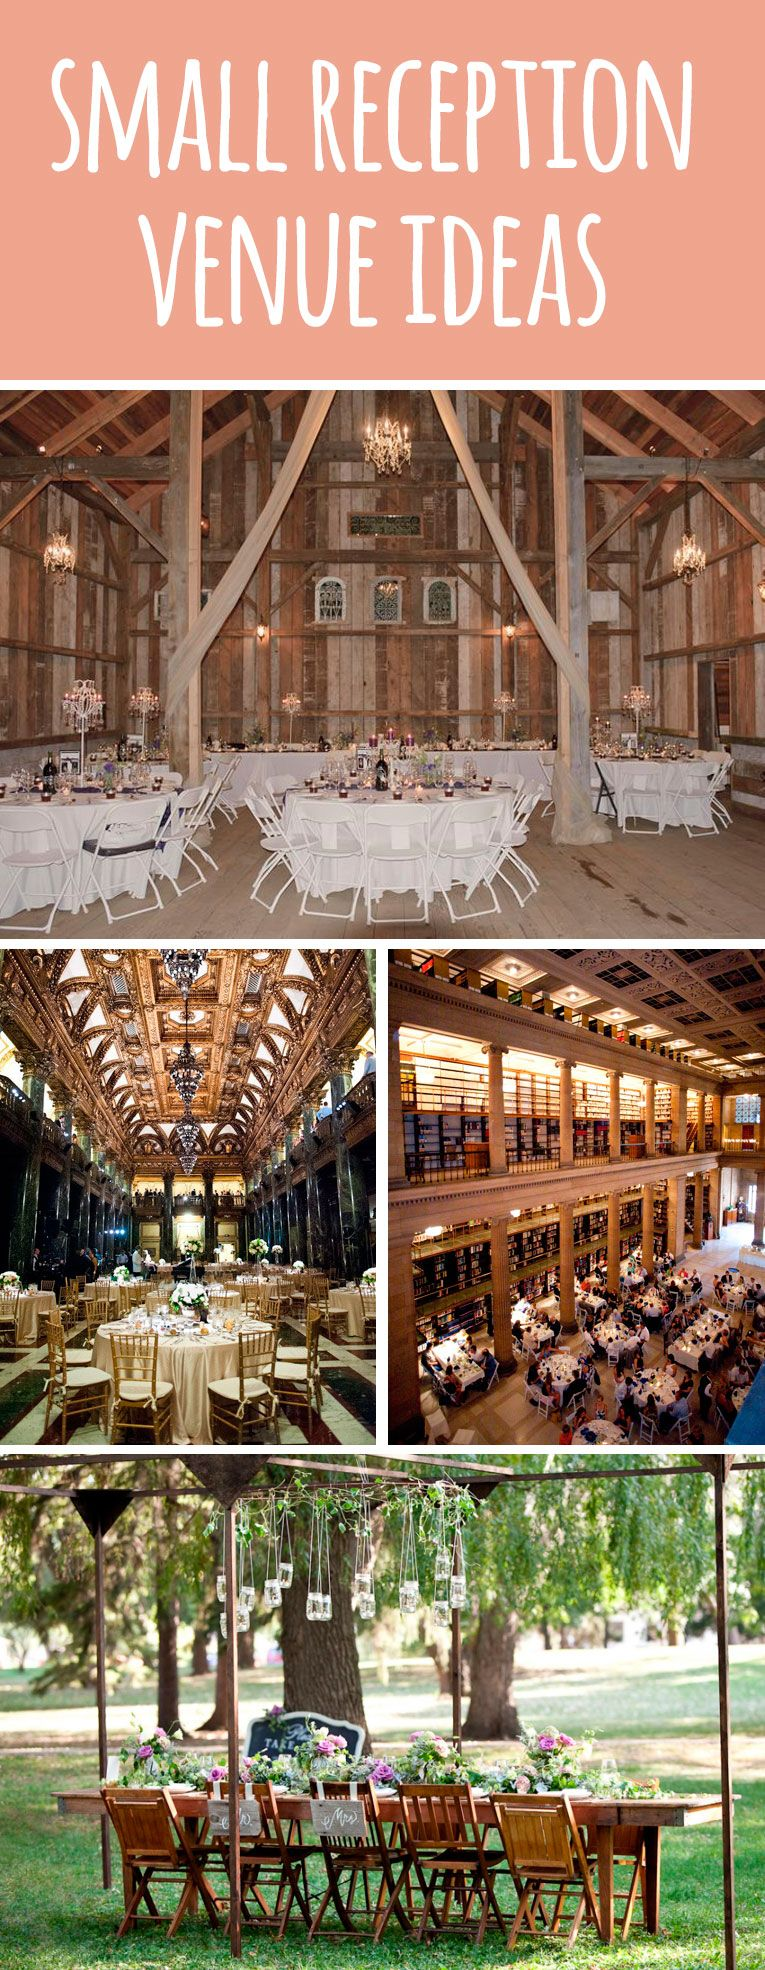 How to Have a Small Wedding | Wedding reception venues, Reception ...